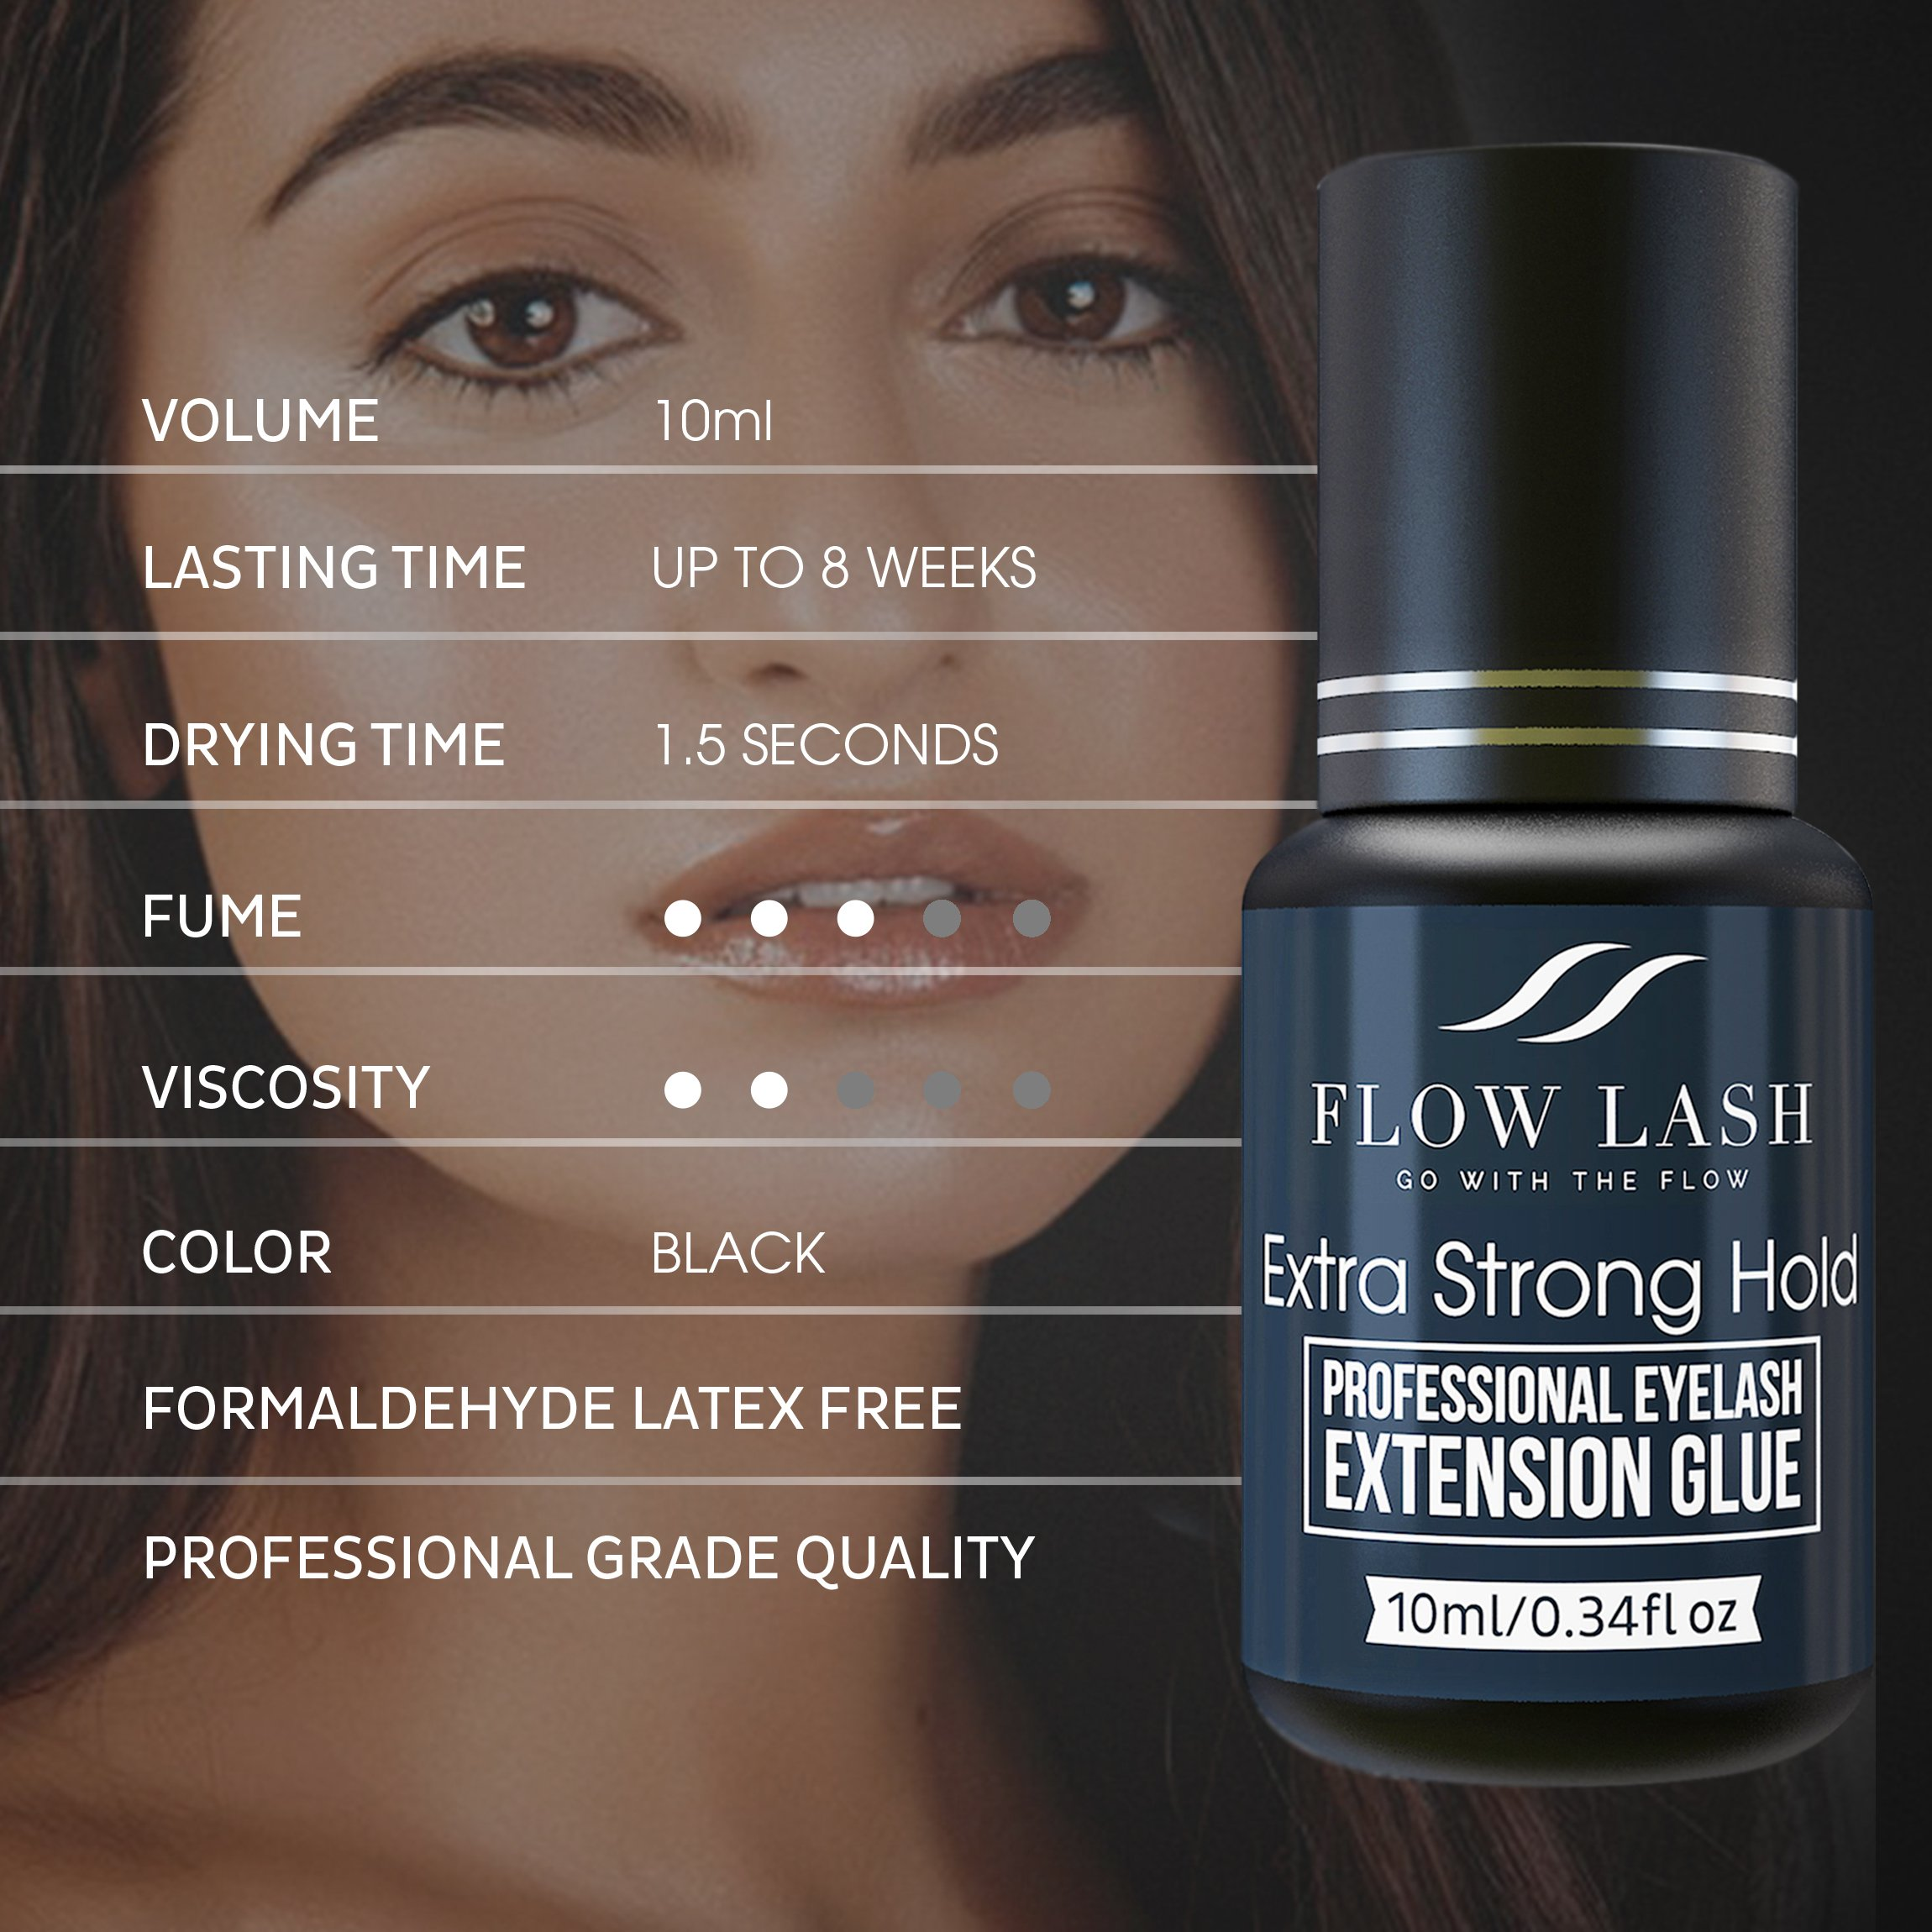 Professional Eyelash Extension Glue - Extra Strong Hold, Long Lasting, Quick Dry Time - Premium Professional Grade Adhesive, Formaldehyde & Latex Free - 10ml by Flow Lash by Flow Lash (Image #6)